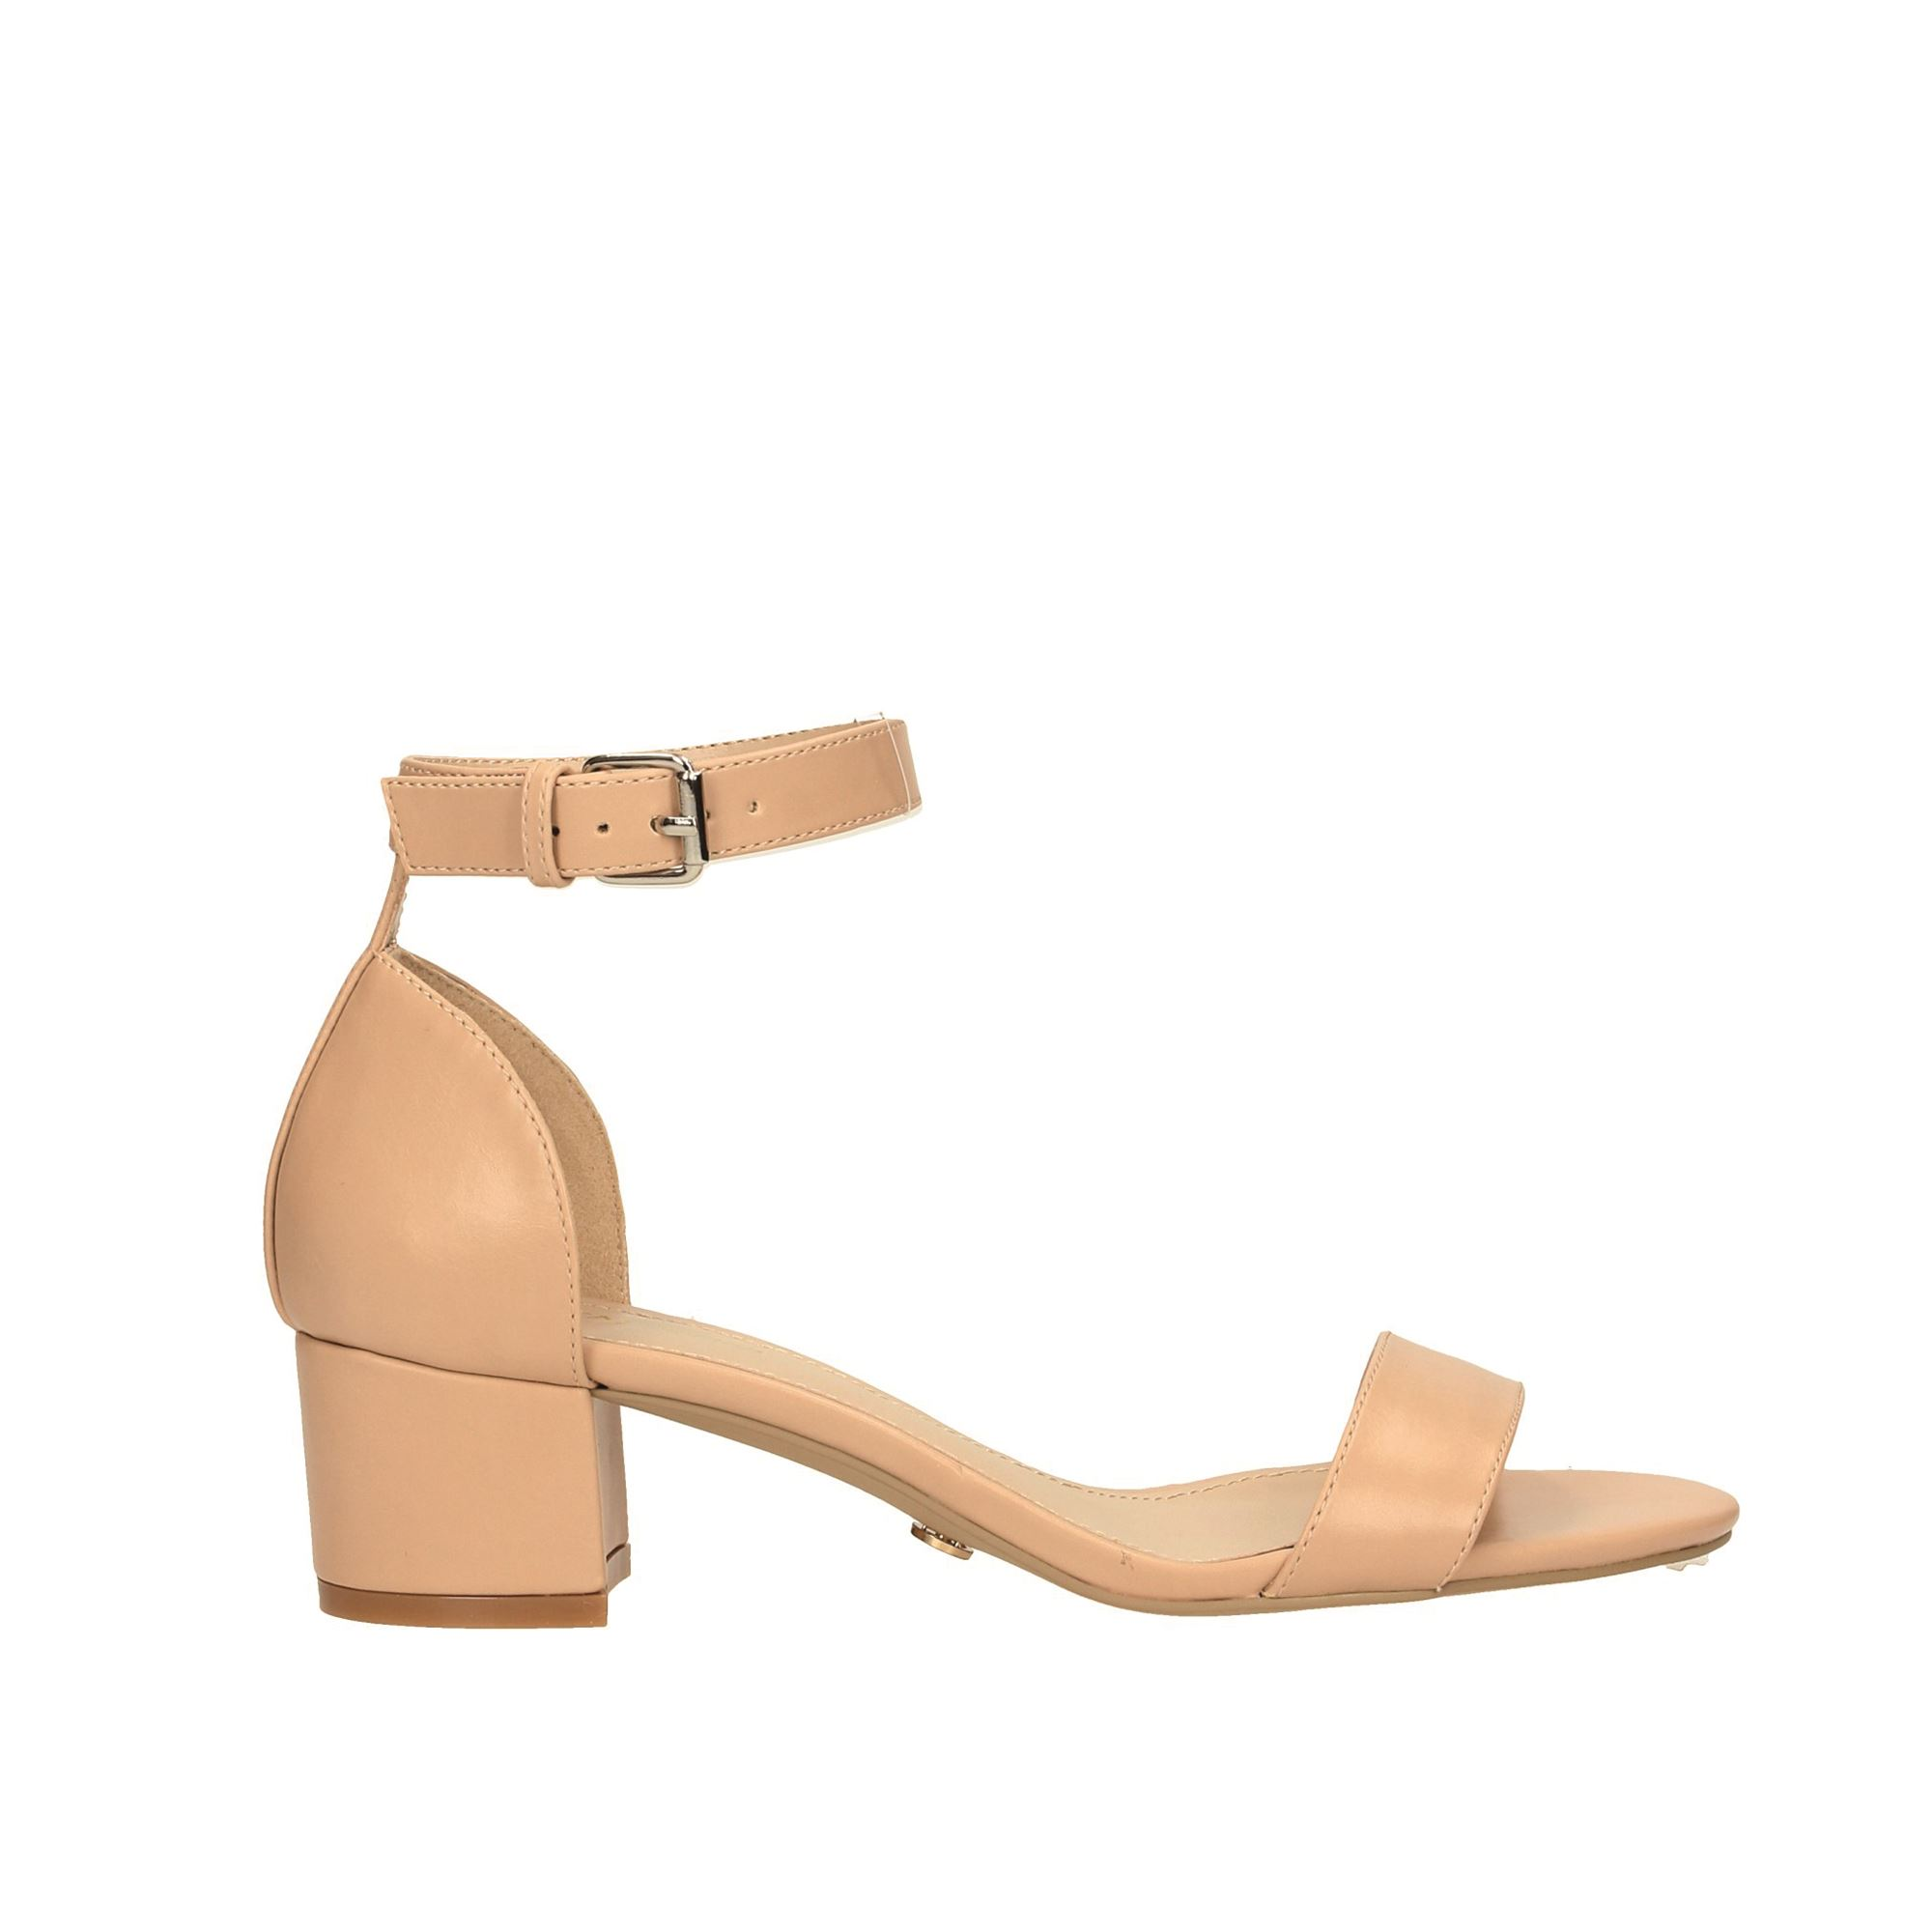 Tata Italia Shoes Woman Sandali Nude 9458L-27